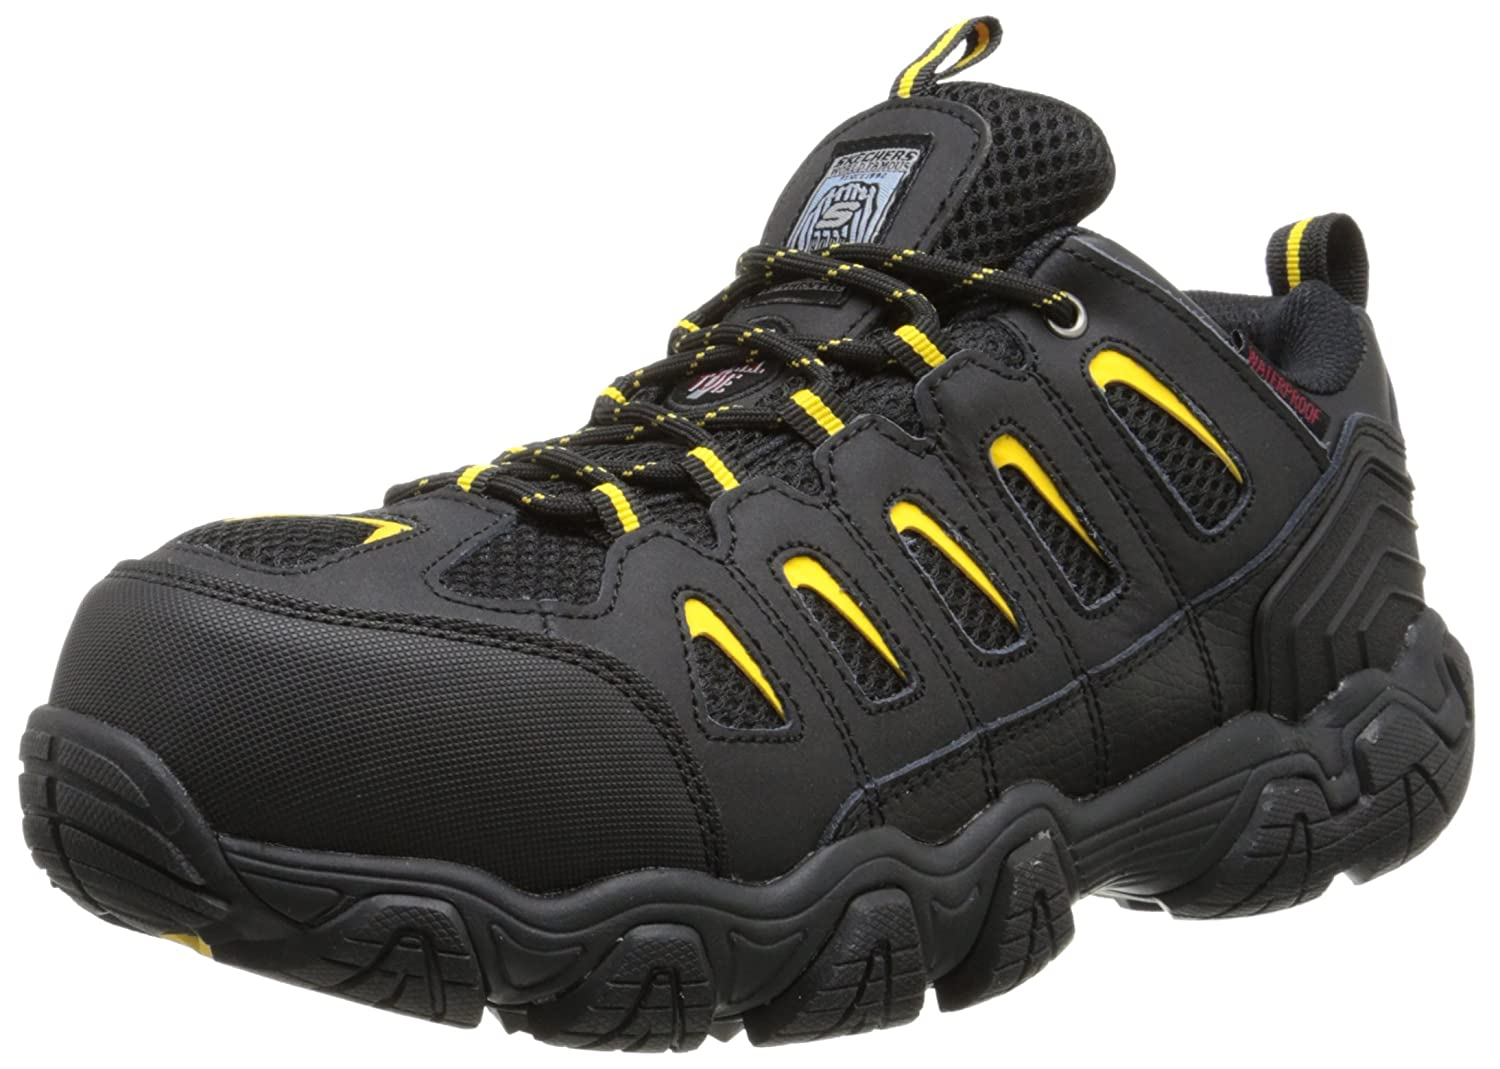 Skechers for Work Men's Blais Steel-Toe Hiking Shoe 77051